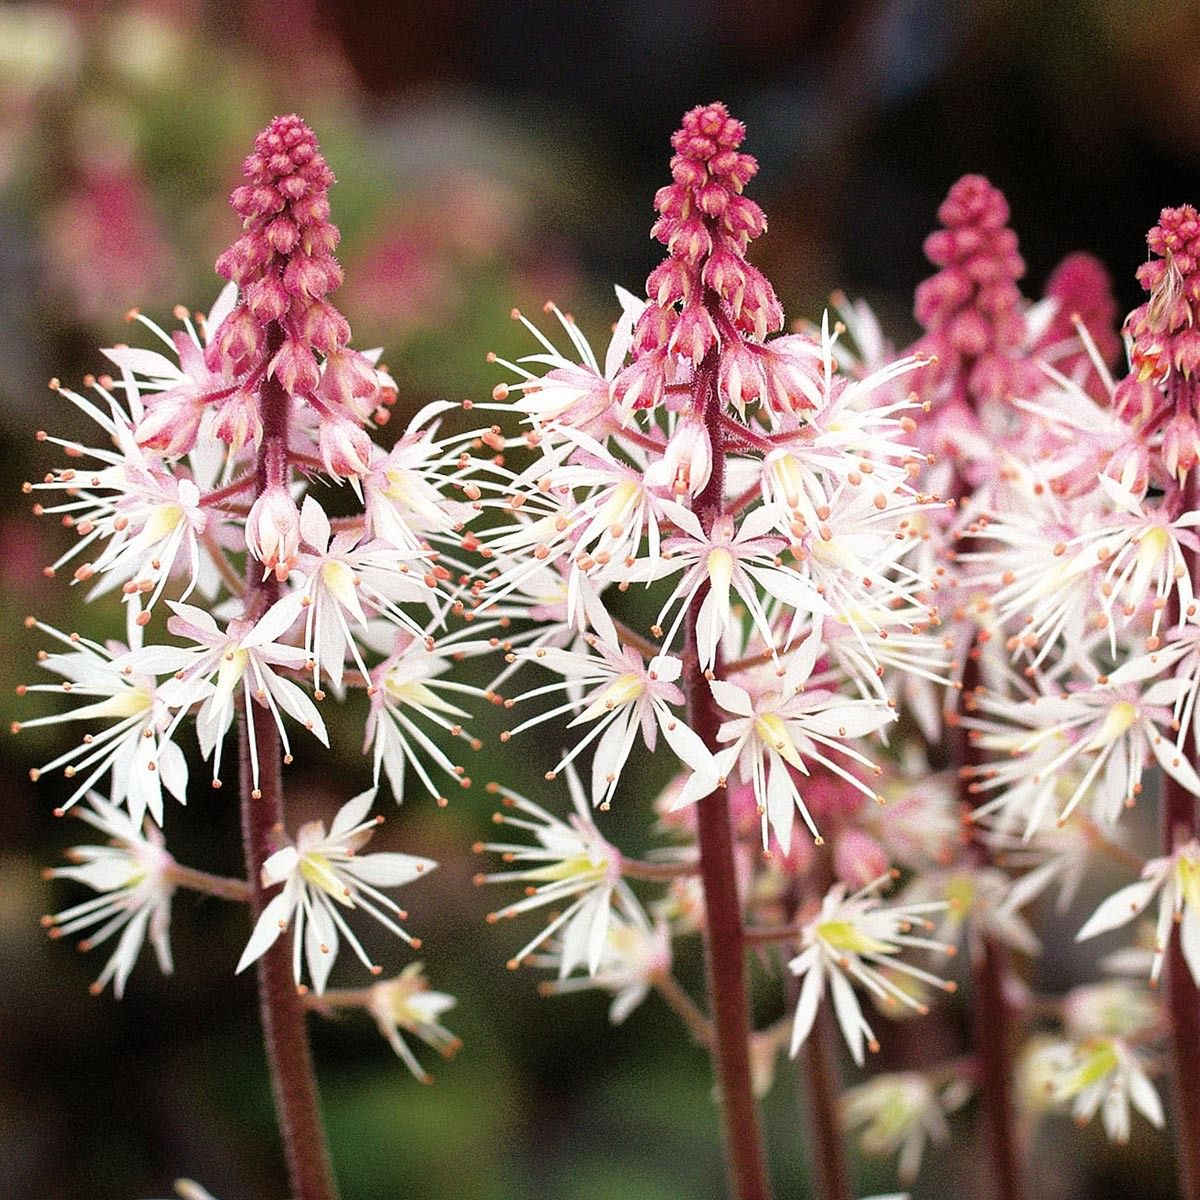 Tiarelle - Tiarella Morning Star